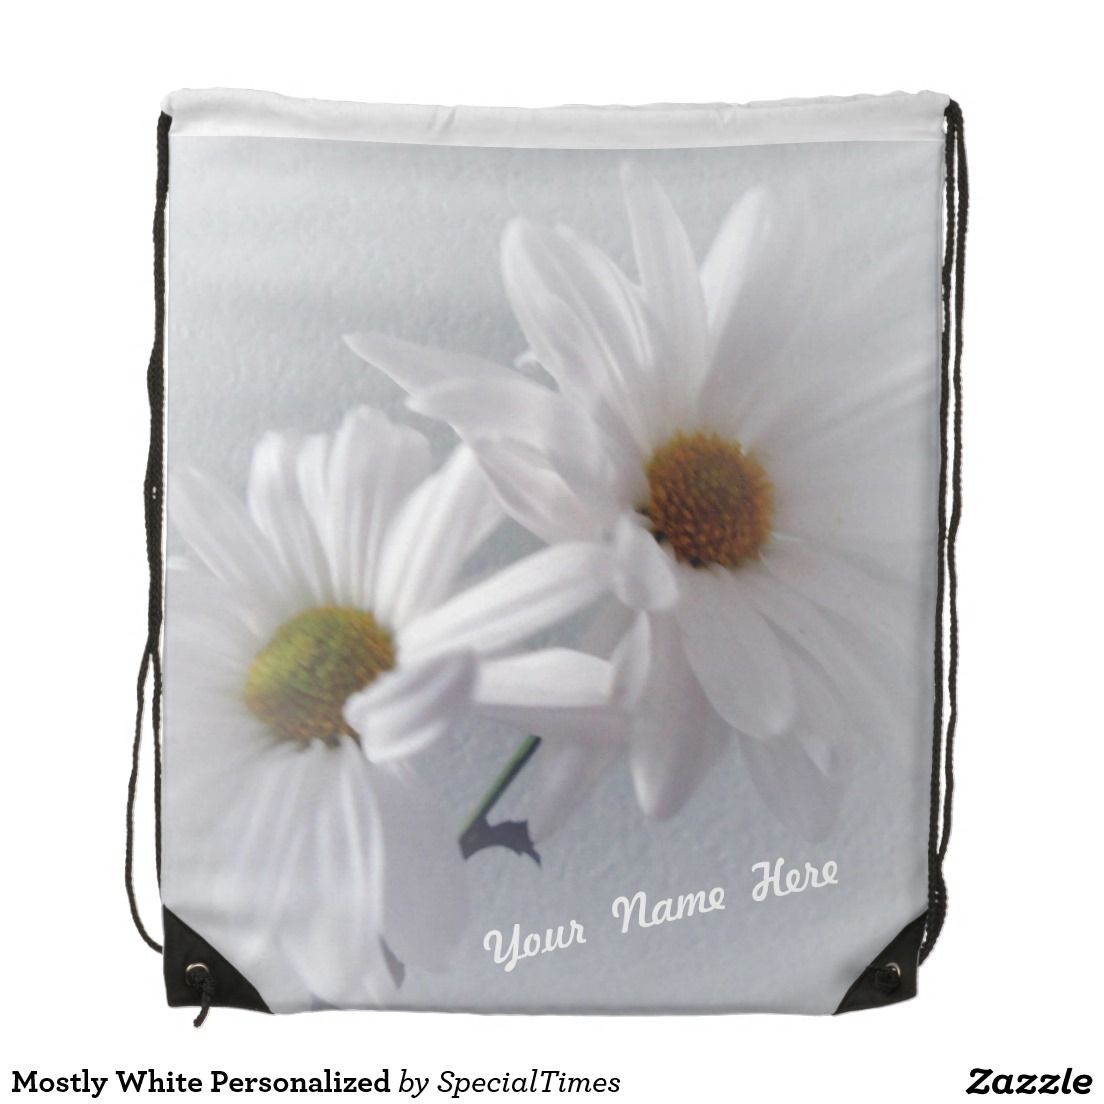 Mostly White Personalized Drawstring Bag - White daisies, on an almost white background, speak of sweetness and purity. #personalized #daisies #floral #white #backpack #zazzle